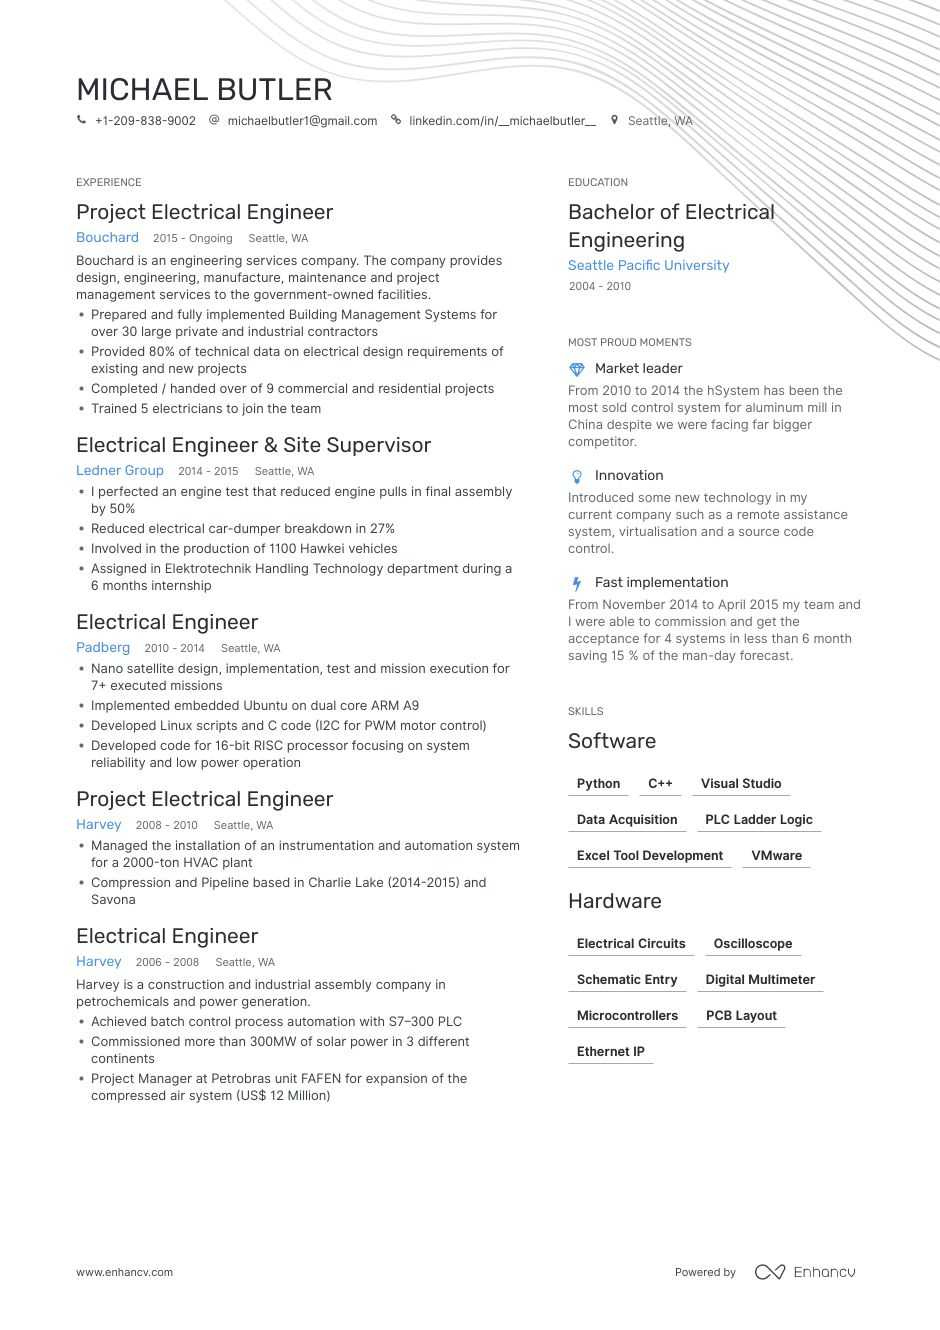 Electrical Engineer Resume Examples Pro Tips Featured Enhancv